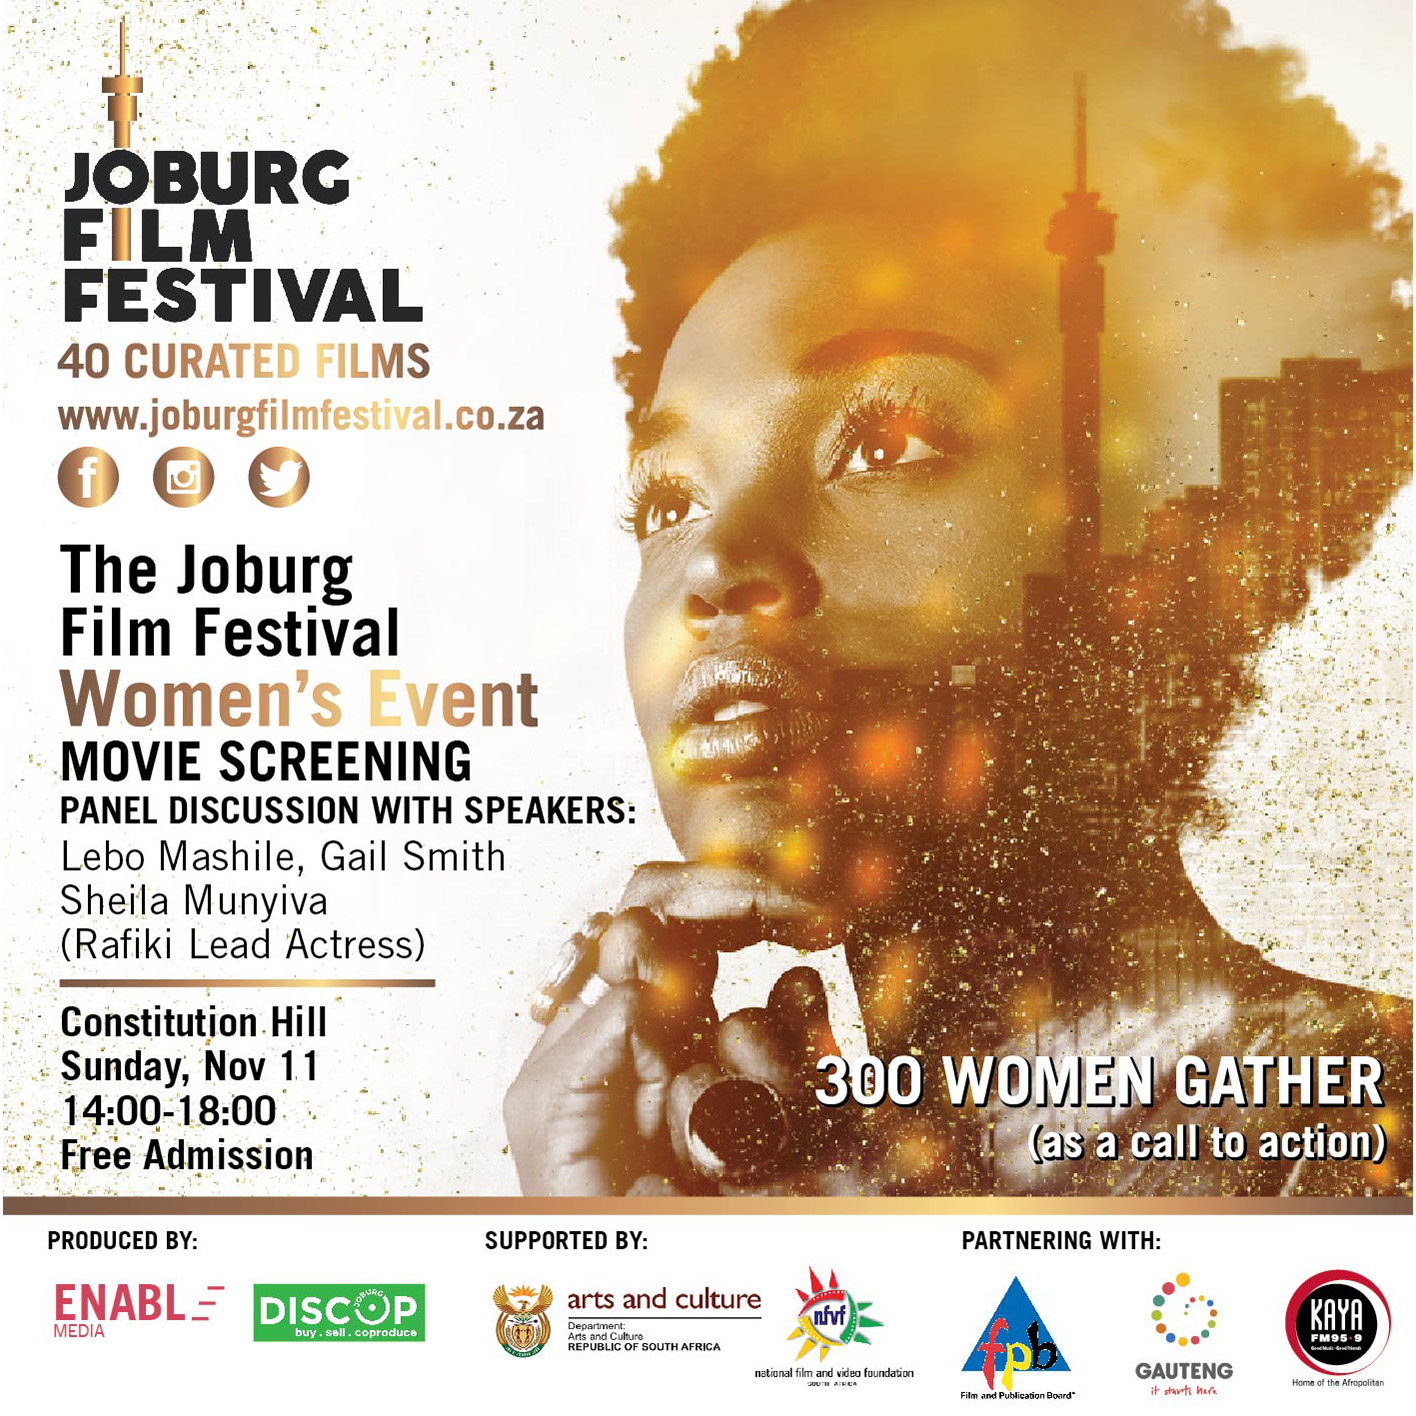 Three Hundred Women Gather To Talk Gender Disparity At The Joburg Film Festival